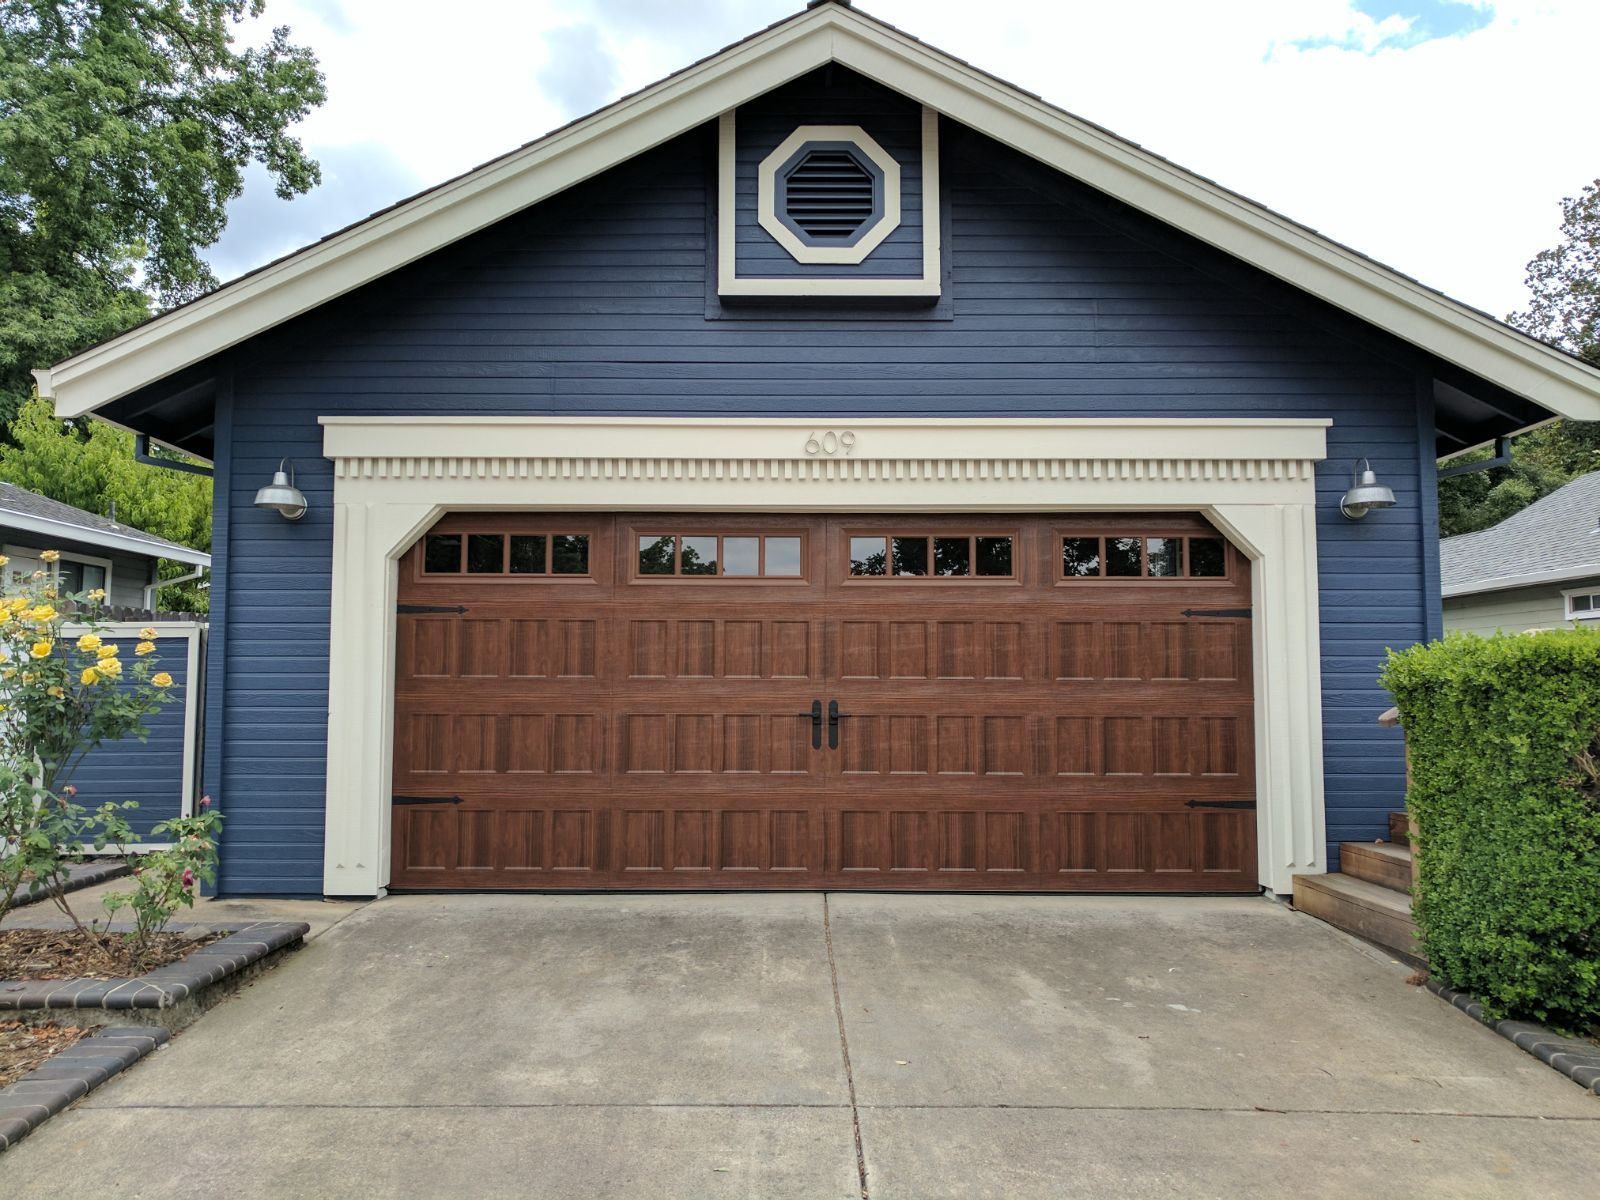 Oak Summit 1000 Garage Doors by Amarr  Sugar Land Garage Door RepairSugar Land Garage Door Repair